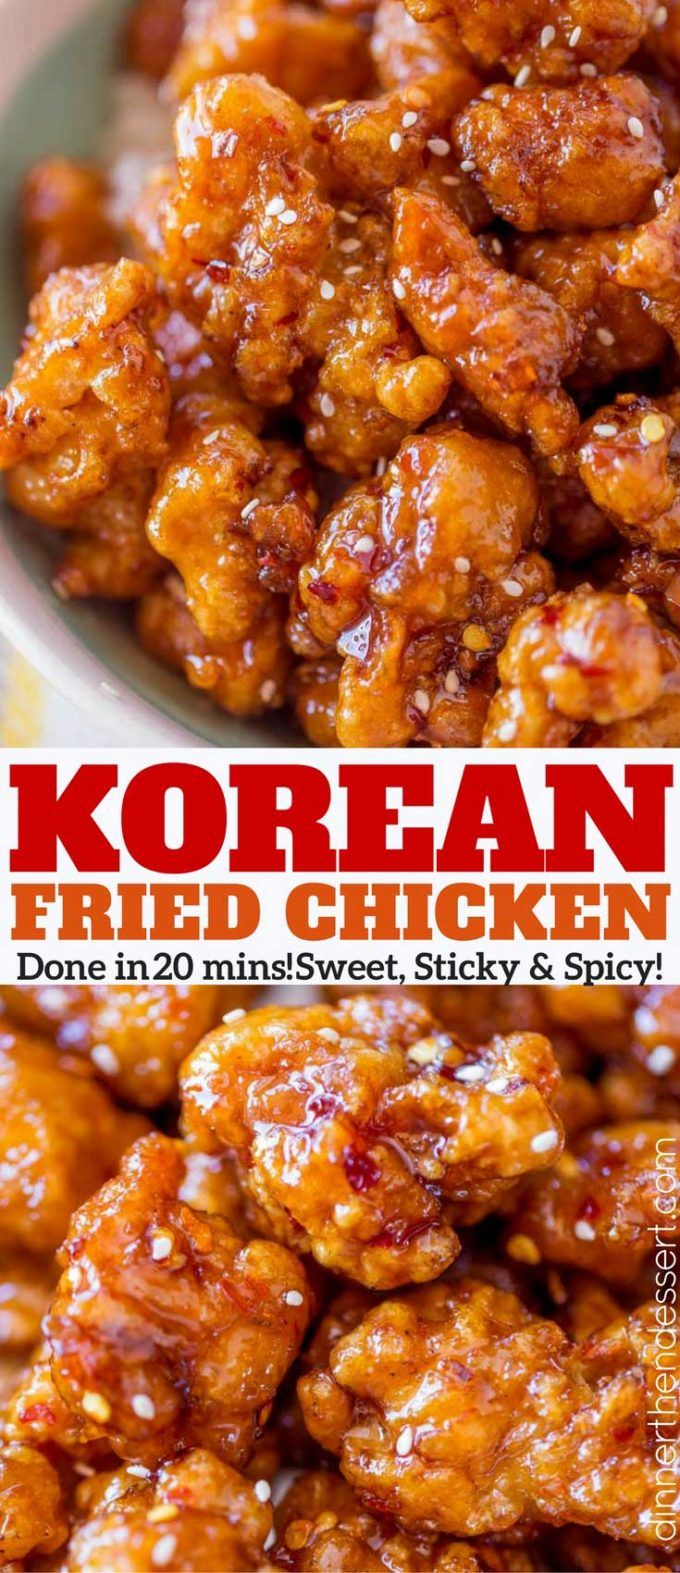 Crispy Korean Fried Chicken in a spicy, sweet glaze that is so crispy and sticky you'll coat everything in this sauce from wings to baked chicken breasts and more!